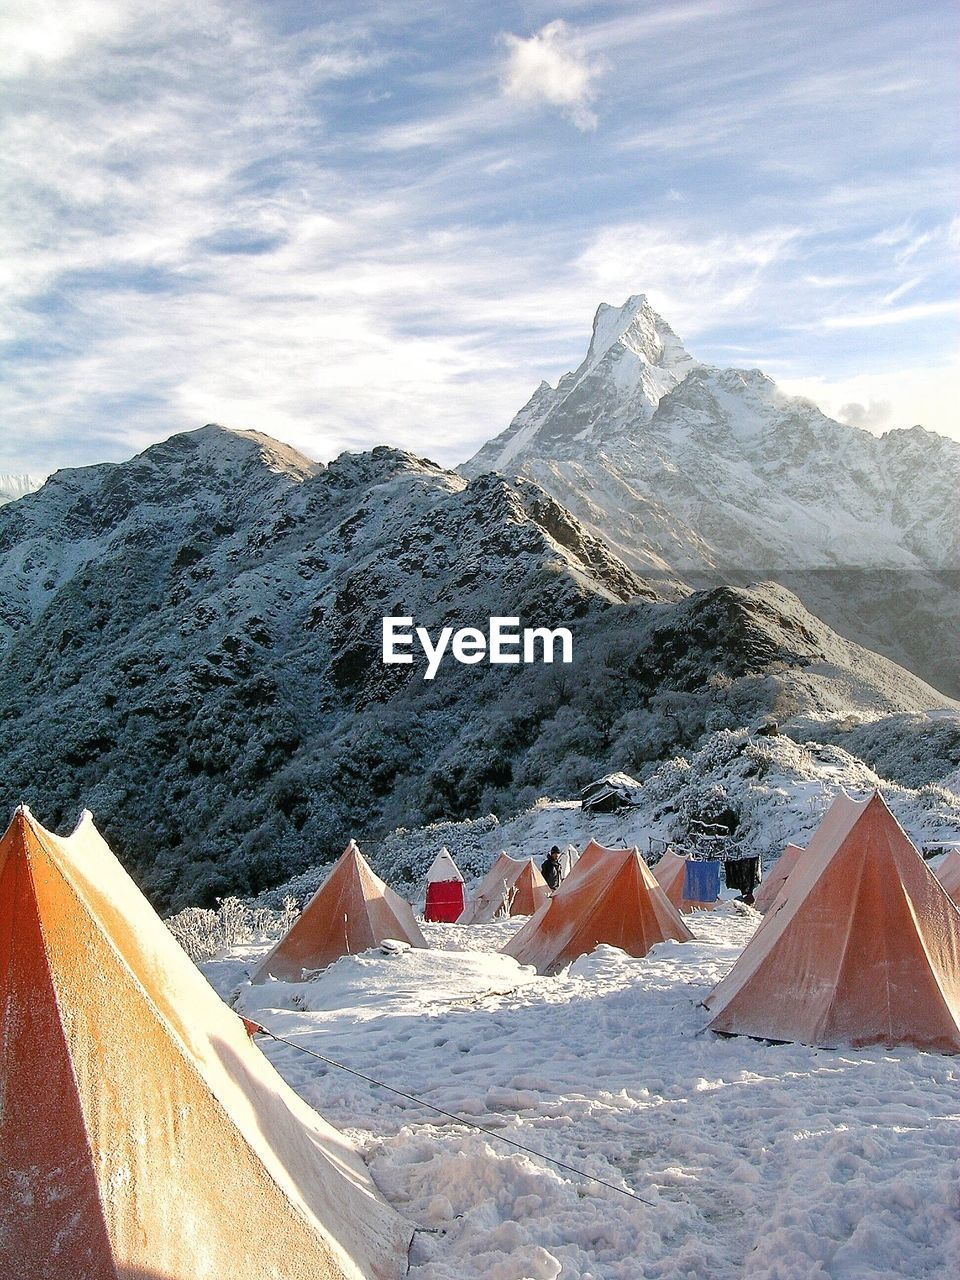 mountain, snow, mountain range, snowcapped mountain, beauty in nature, cold temperature, nature, scenics, sky, day, outdoors, tranquil scene, cloud - sky, winter, tranquility, travel destinations, landscape, no people